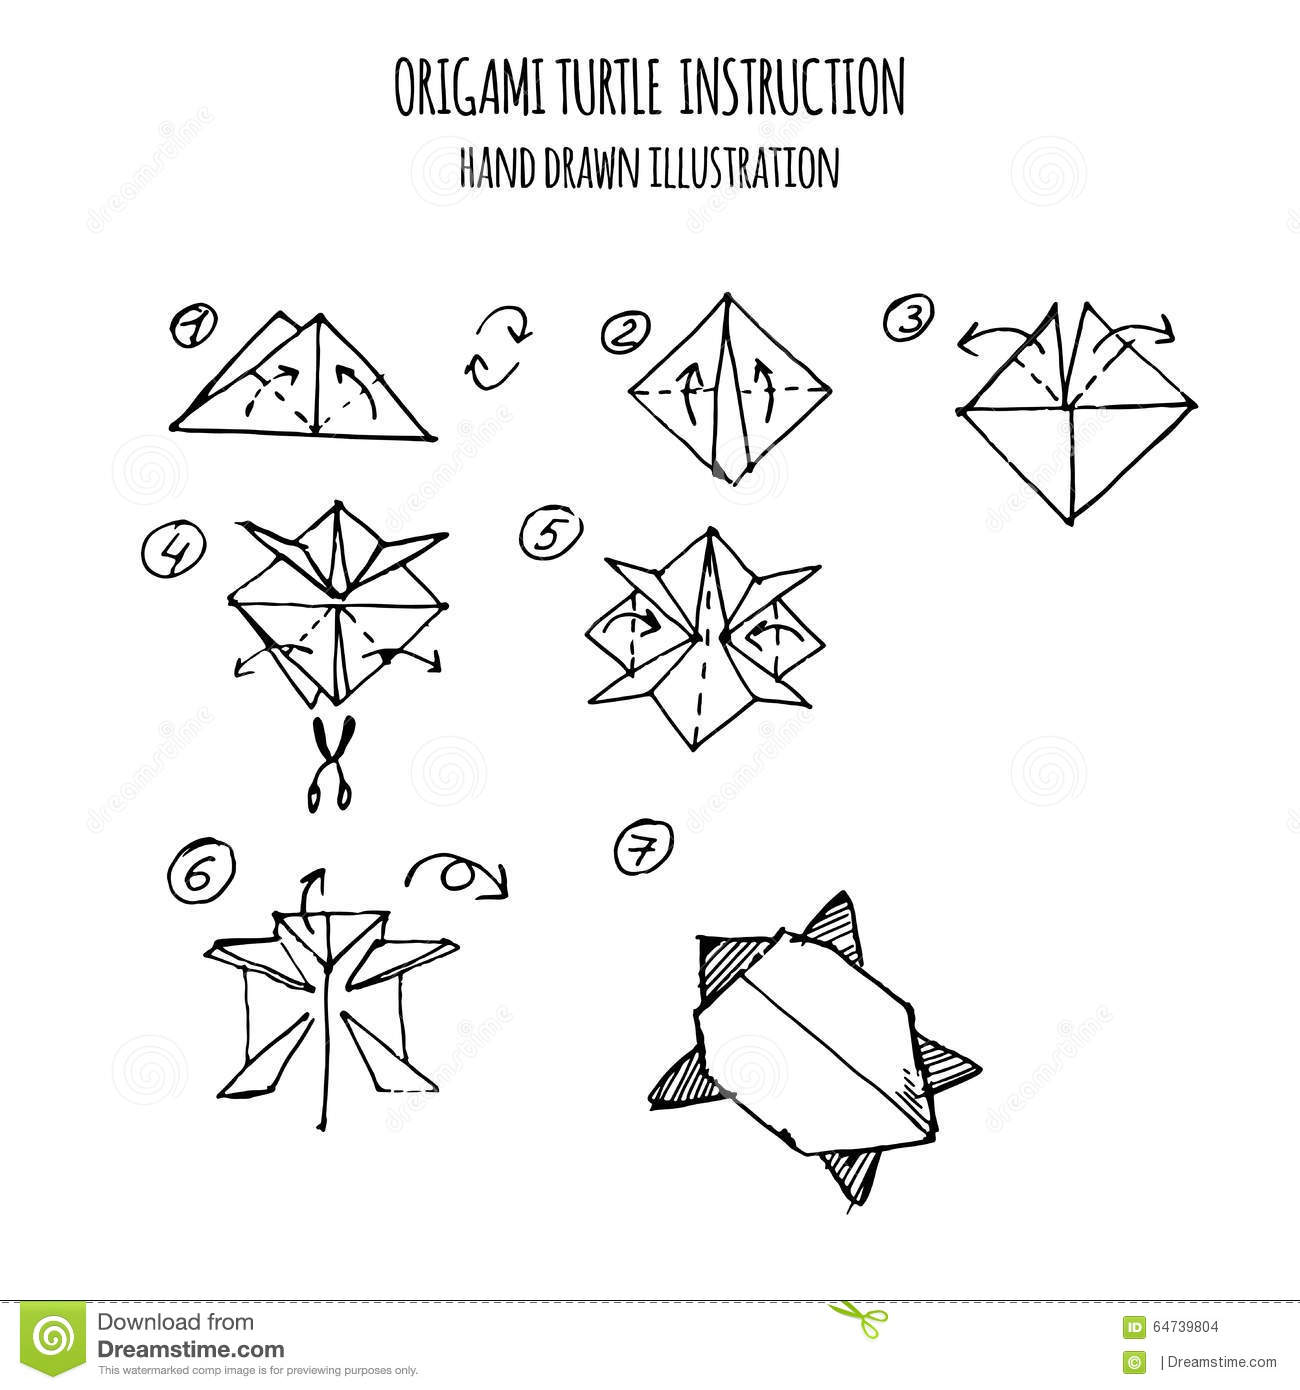 Hand Drawn Illustration Step By Step Of Turtle Origami Illustration